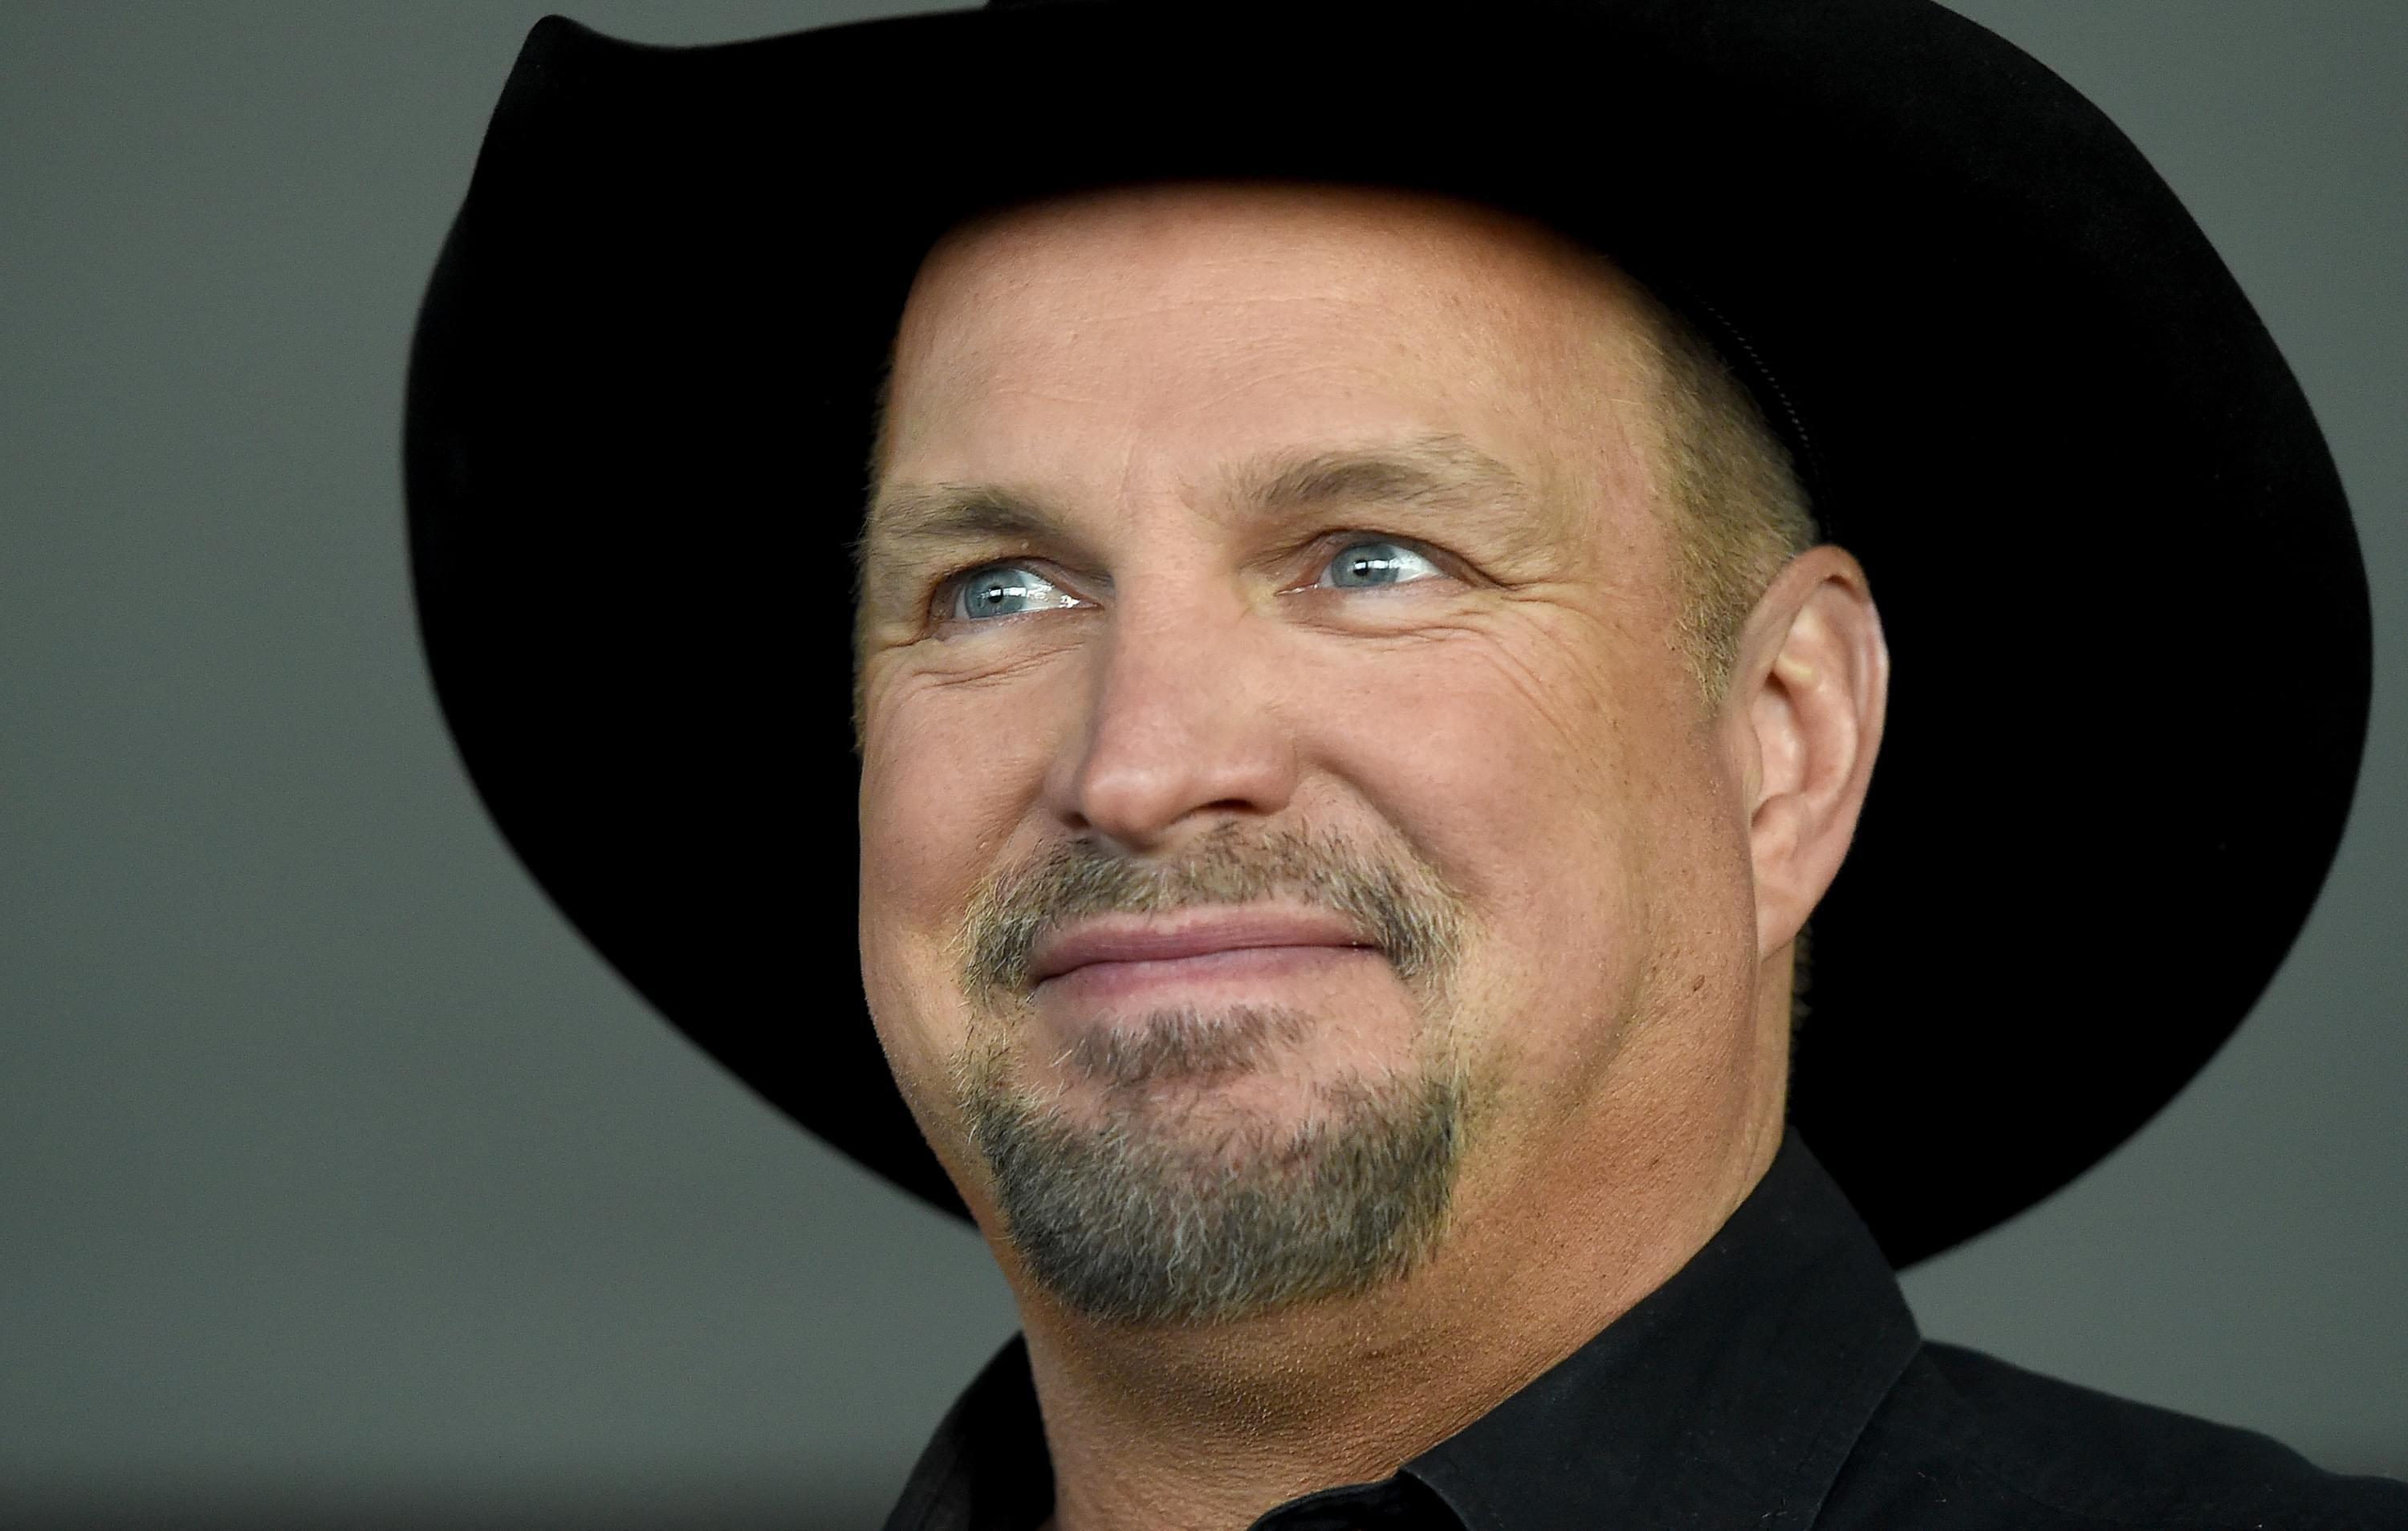 Did Garth Brooks Get Hair Plugs? Twitter Says Yes.